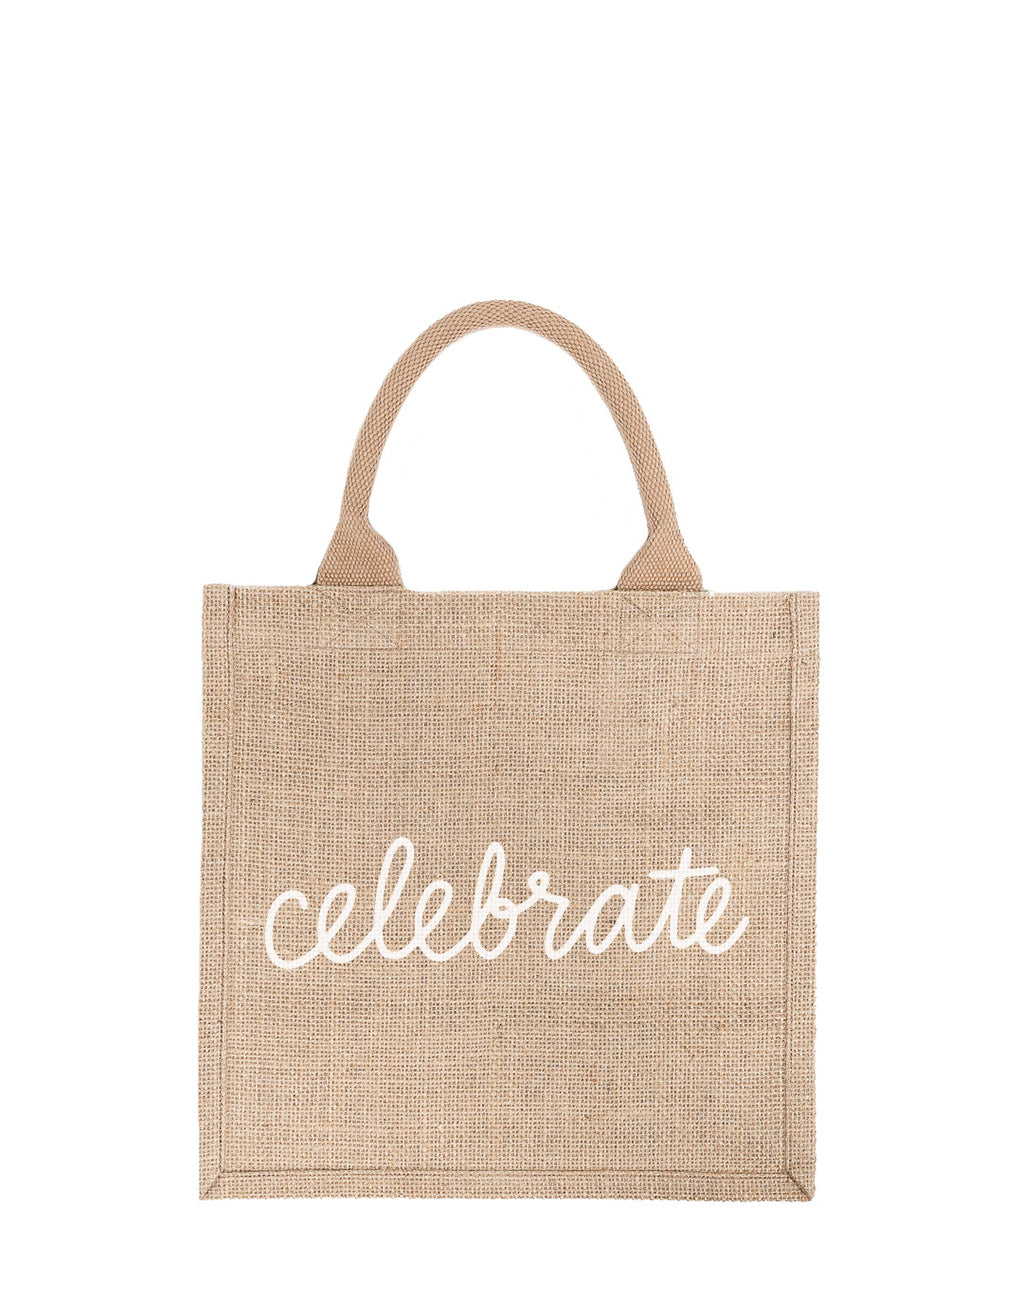 Large Celebrate Reusable Gift Tote In White Font | The Little Market